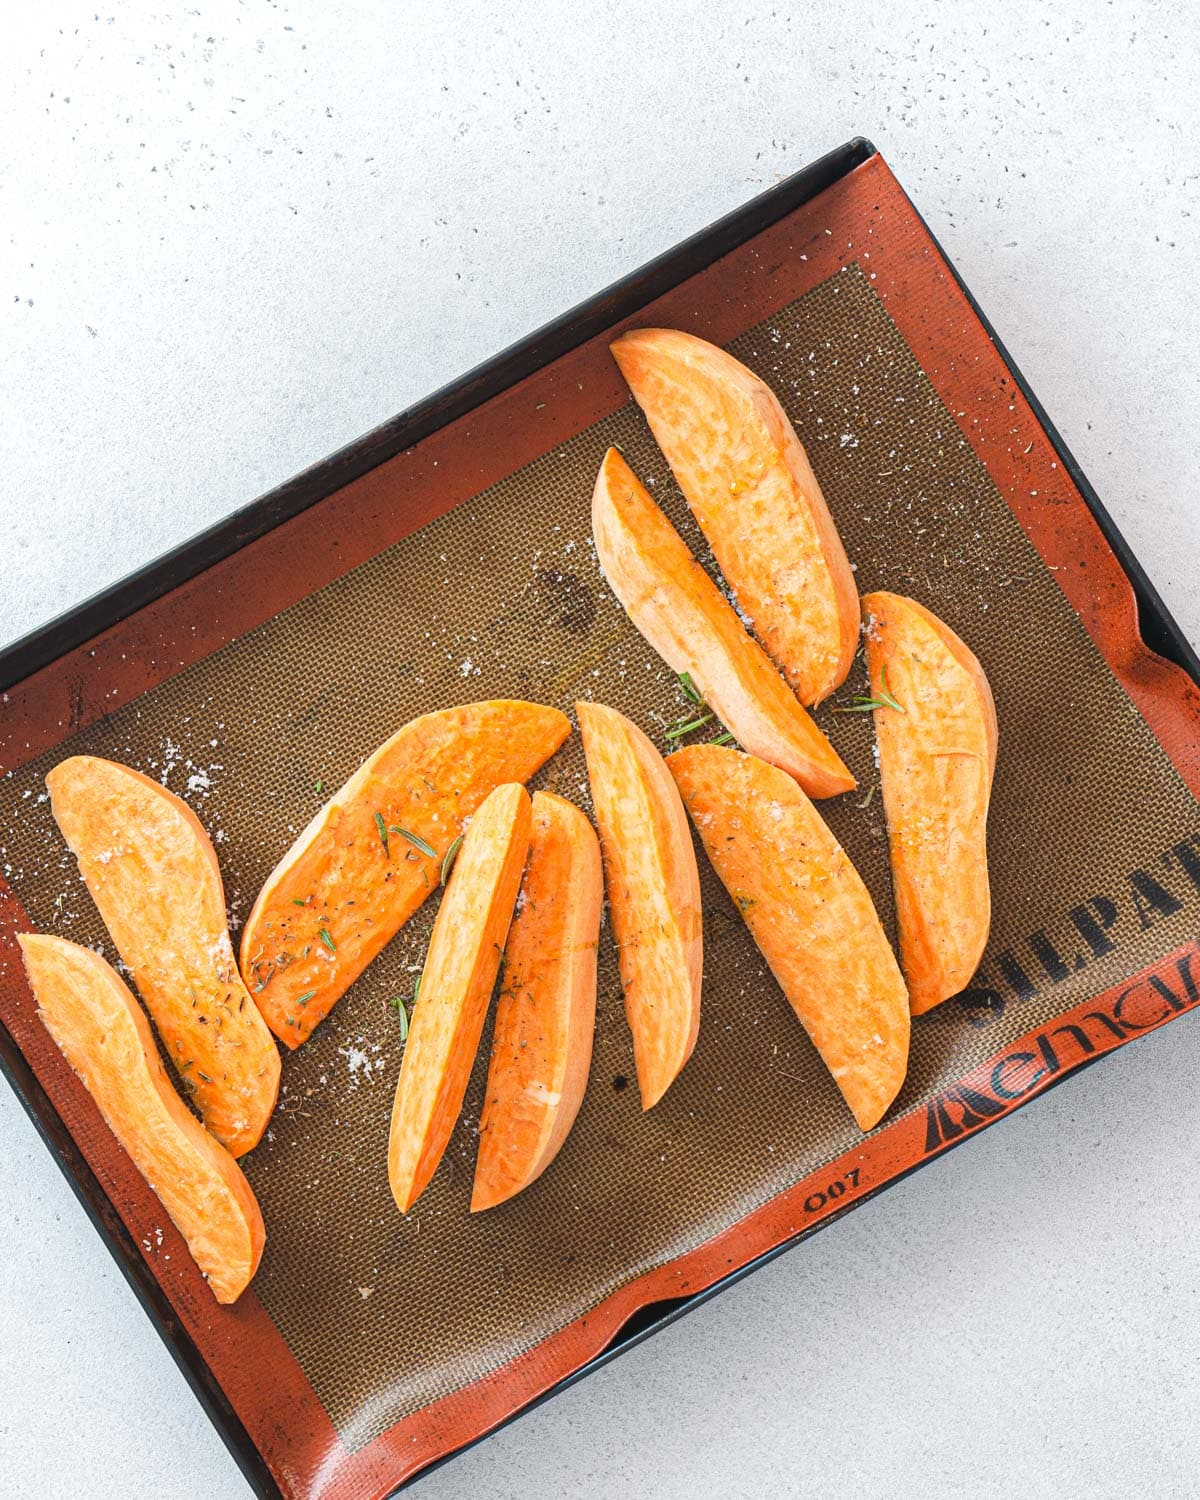 Sweet potatoo wedges ready to be baked